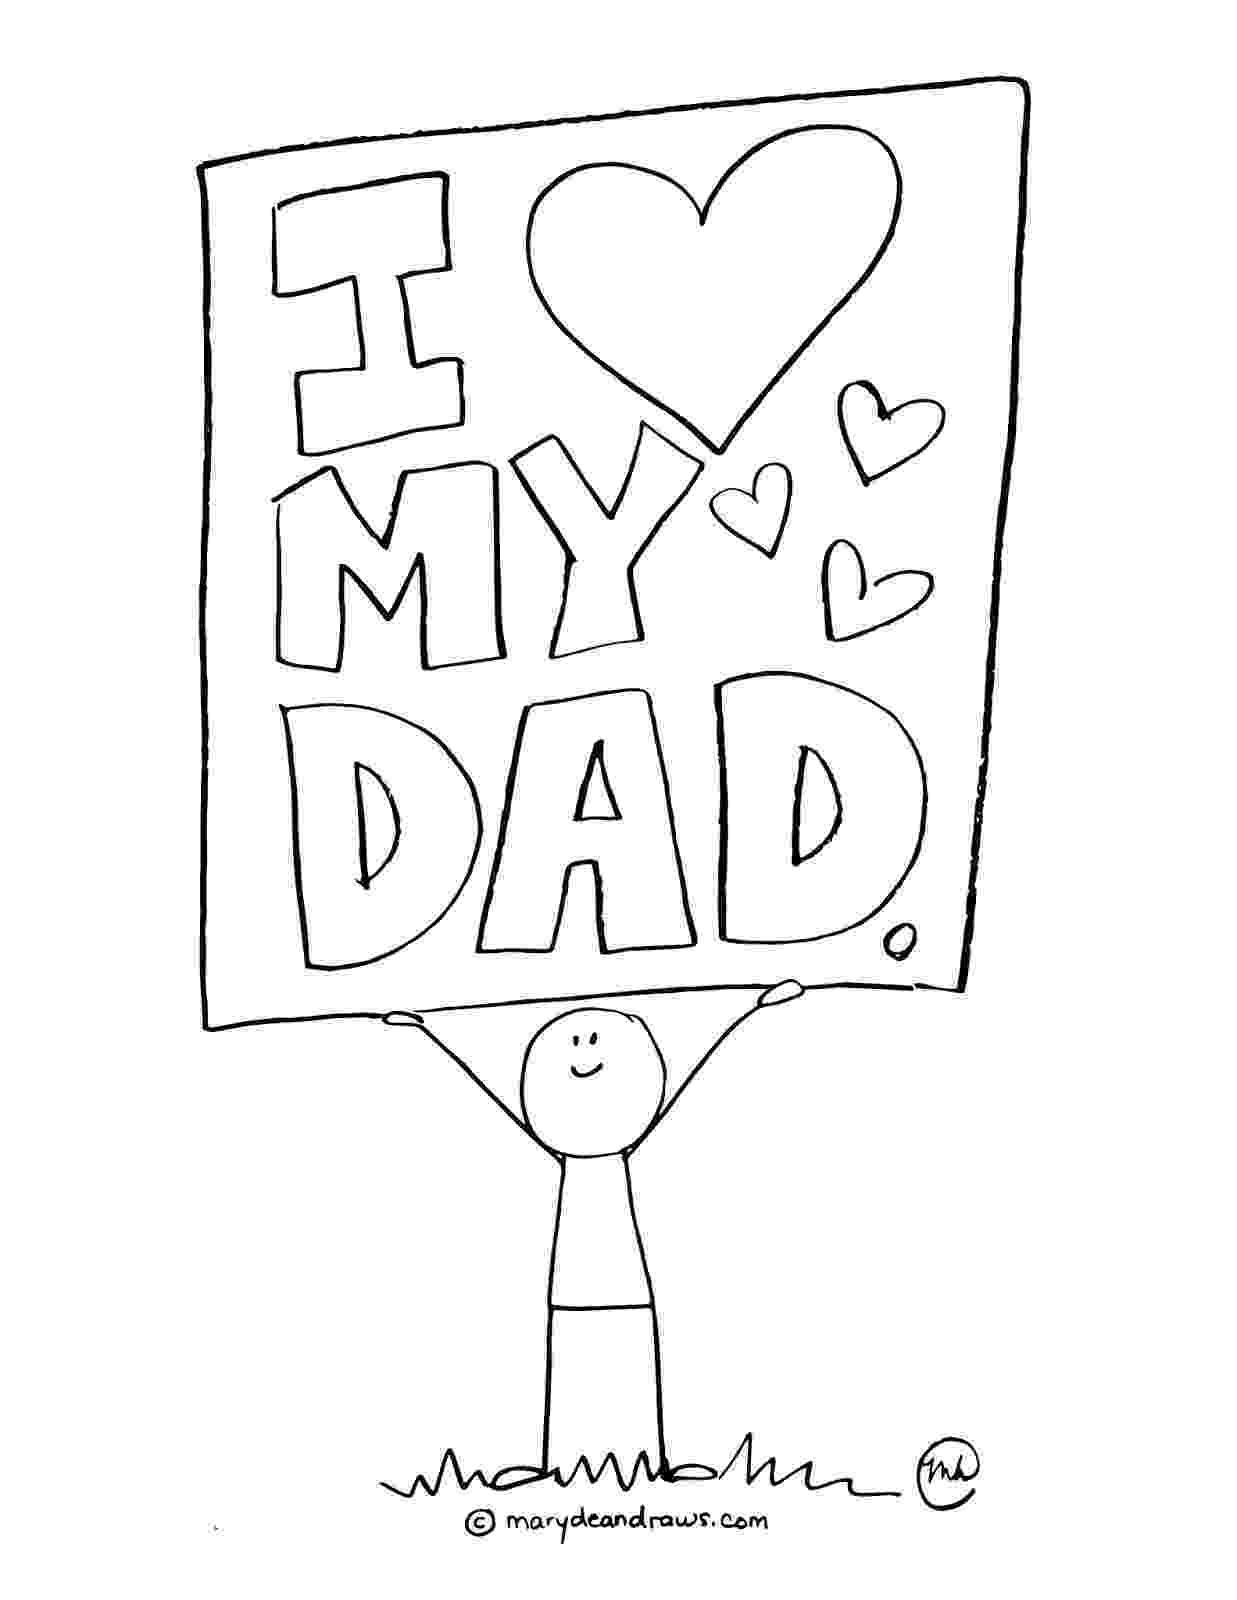 dad coloring pages dad coloring page for the best dad skip to my lou coloring pages dad